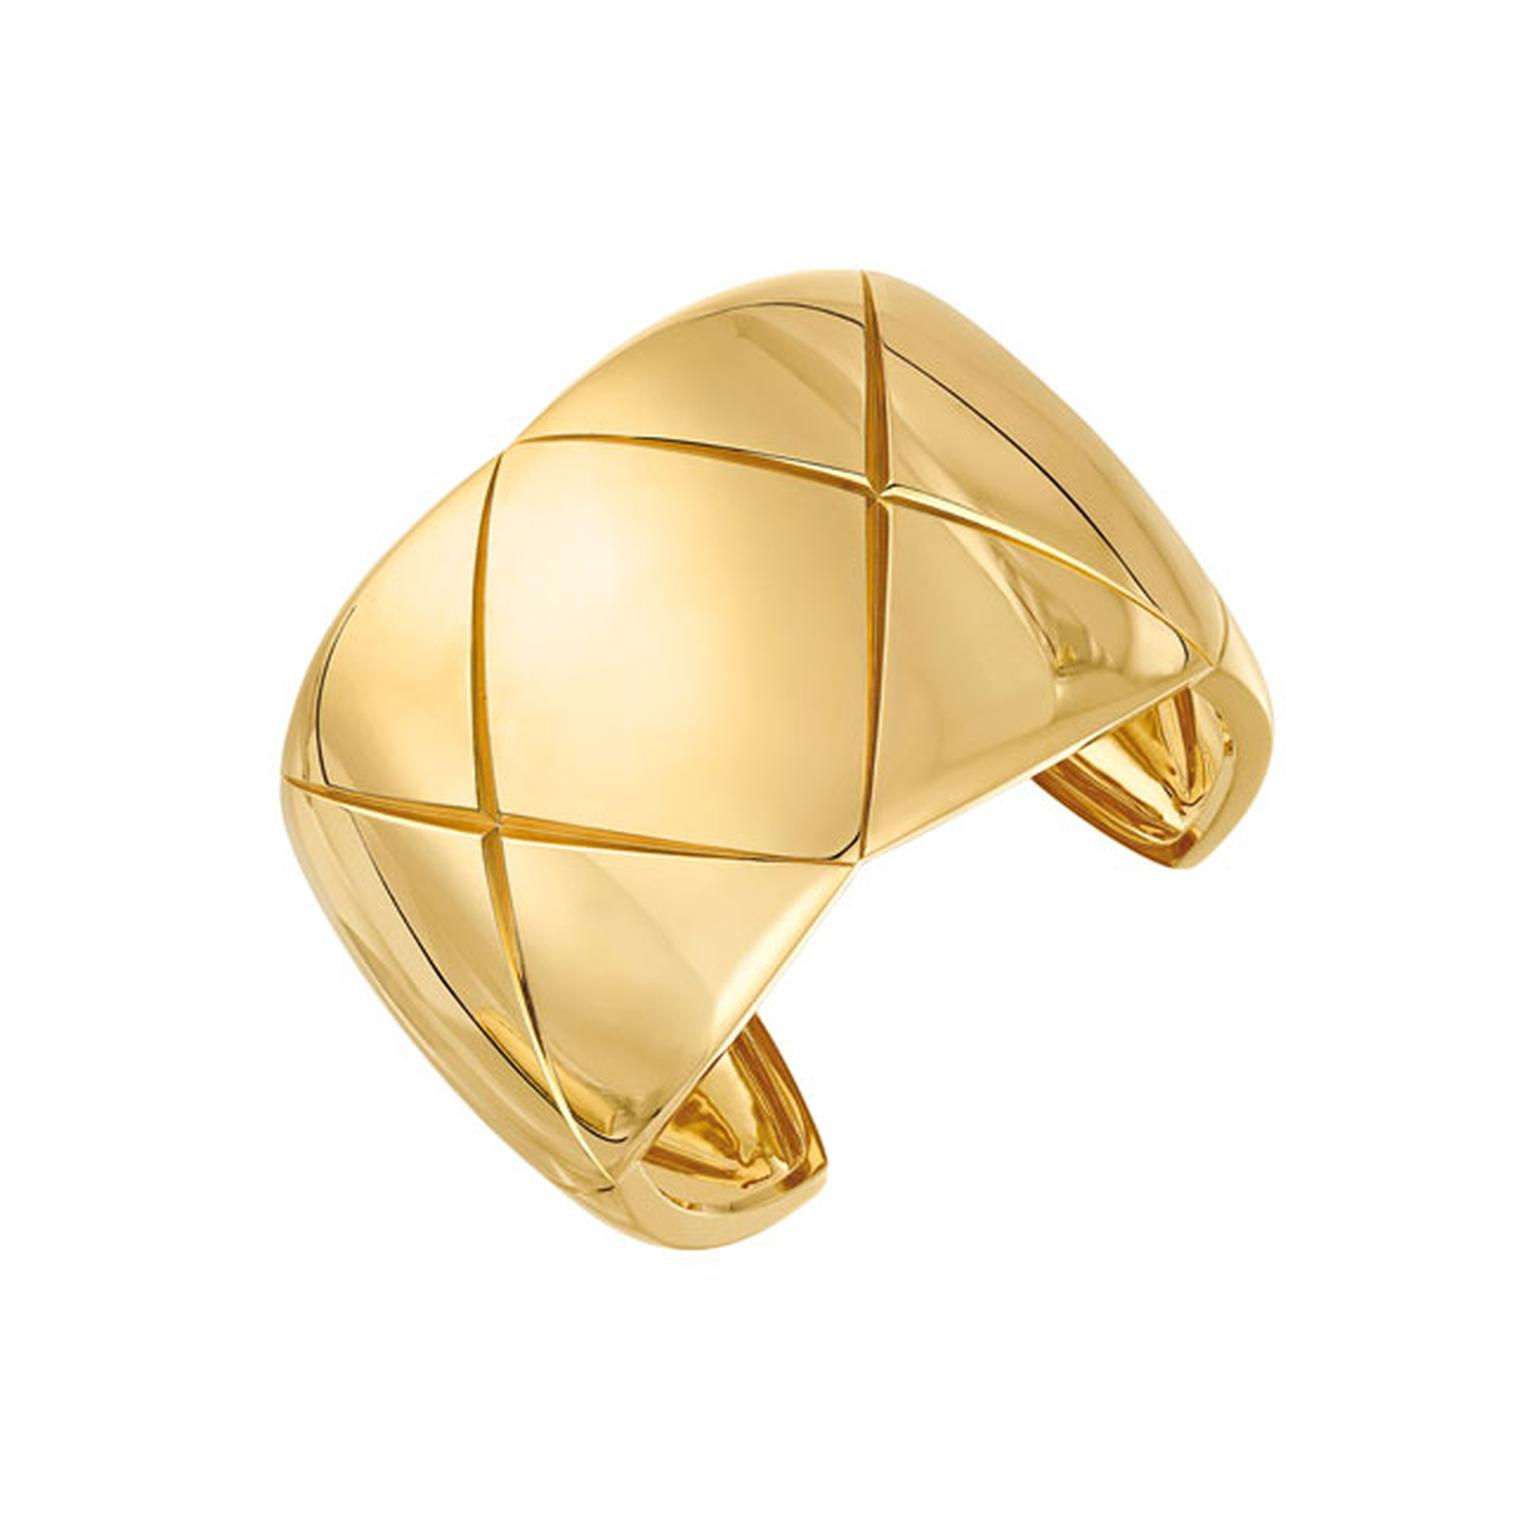 Chanel Coco Crush Yellow Gold Cuff_main